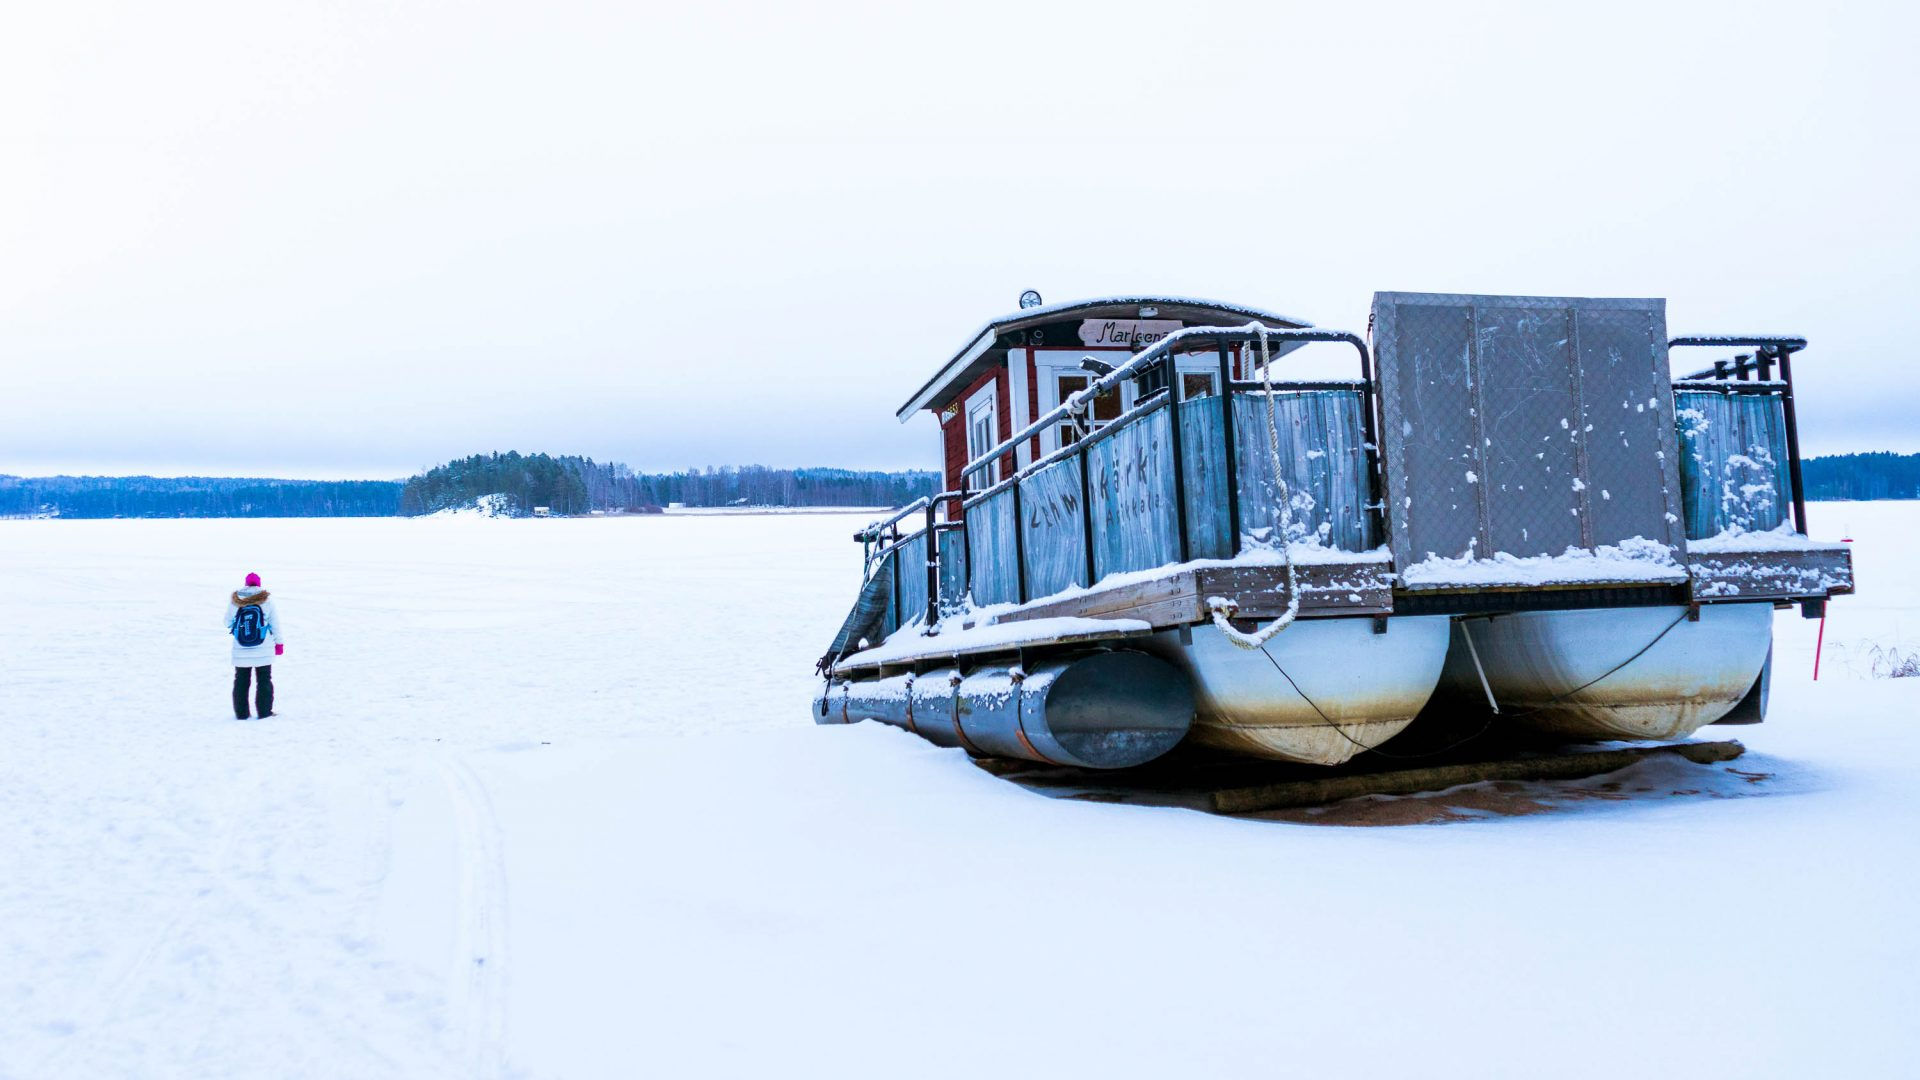 A sauna in Finland sits marooned on the snow.